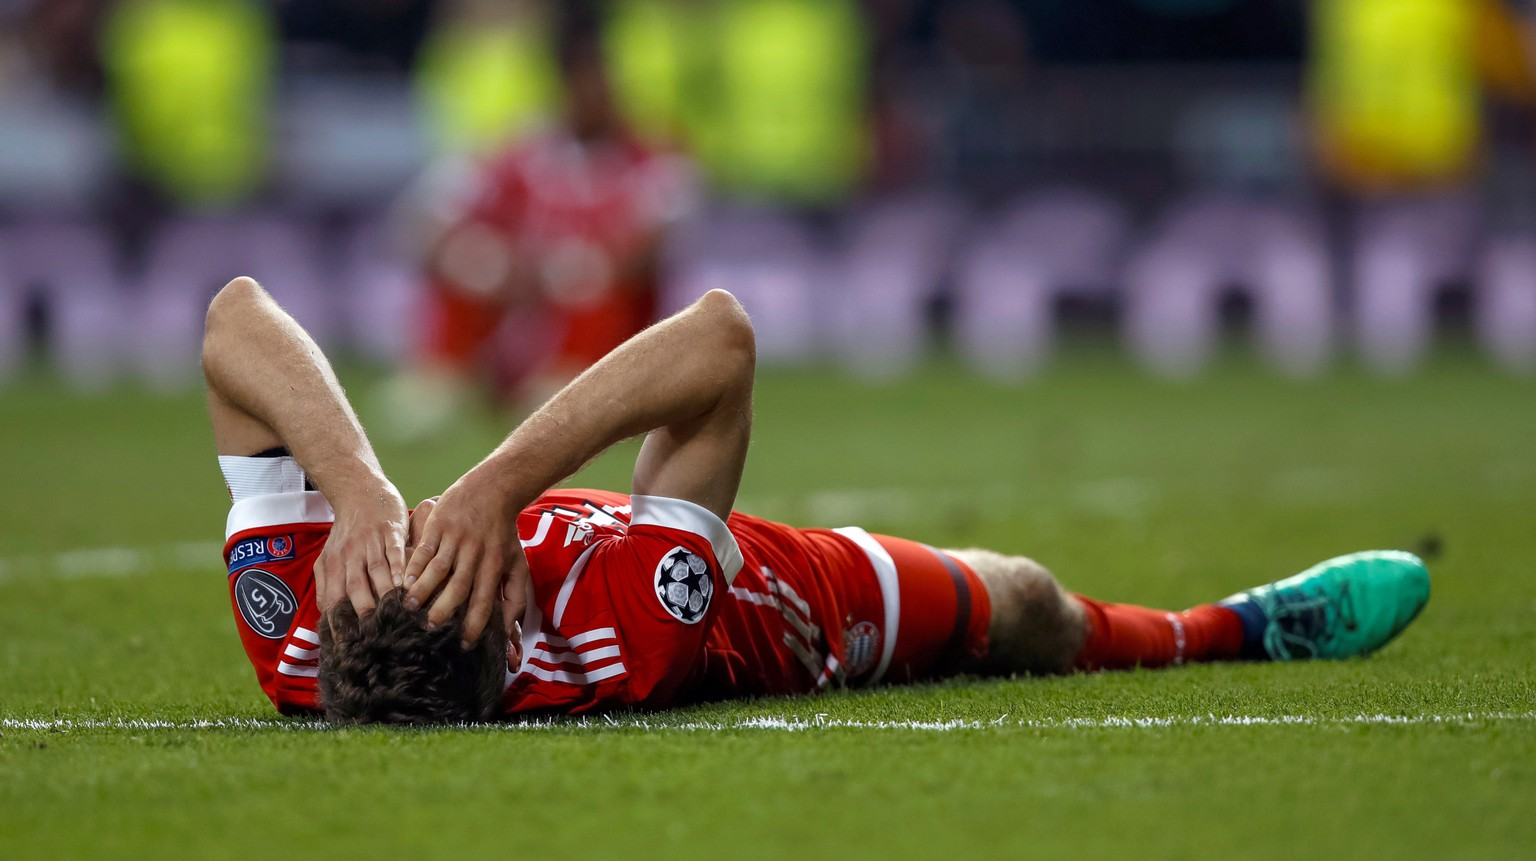 epa06705486 Bayern Munich's Thomas Mueller reacts after the UEFA Champions League semi finals second leg match between Real Madrid and Bayern Munich at Santiago Bernabeu stadium in Madrid, Spain, 01 May 2018. Bayern lost 3-4 on aggregate.  EPA/EMILIO NARANJO